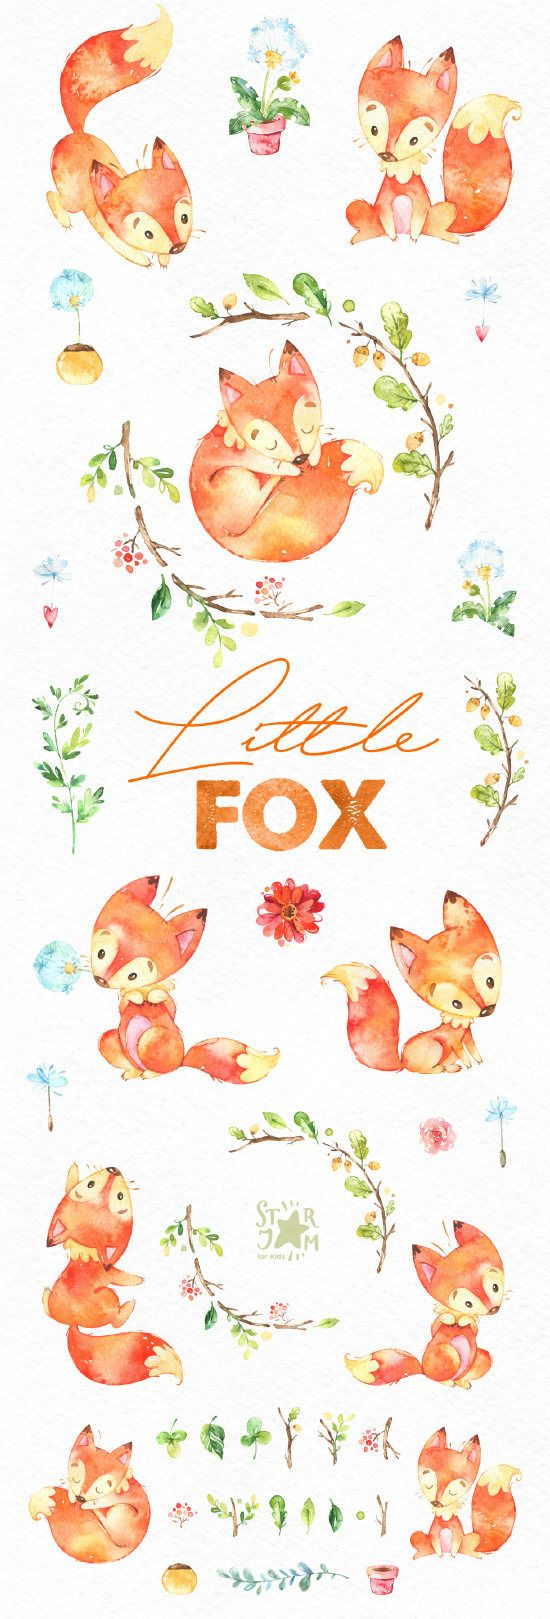 This Cute Little Fox set is just what you needed for the perfect invitations, craft projects, paper products, party decorations, printable, greetings cards, posters, stationery, scrapbooking, stickers, t-shirts, baby clothes, web designs and much more. :::::: DETAILS :::::: This collection includes - 38 Images in separate PNG files, transparent background, different size approx.: 12-2in (3600-600px) 300 dpi RGB ::::: TERMS OF USE ::::: ► Personal or non-profit You can use our artworks ...